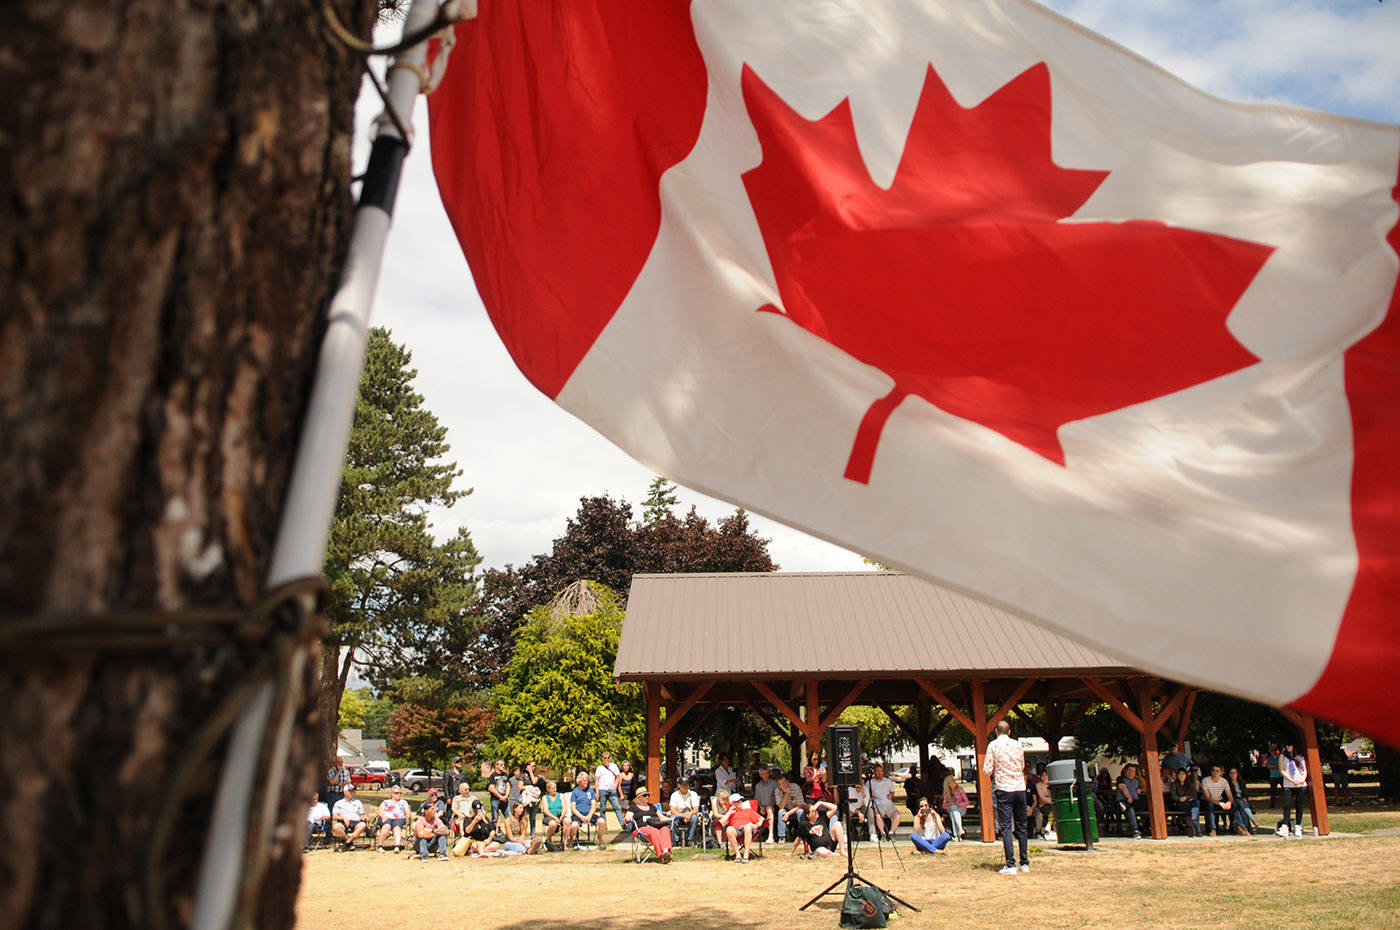 Maxime Bernier, leader of the People's Party of Canada, speaks during a stop on his Mad Max Summer 2021 Pre-Election Tour at Yarrow Pioneer Park on Saturday, July 17, 2021. (Jenna Hauck/ Chilliwack Progress)